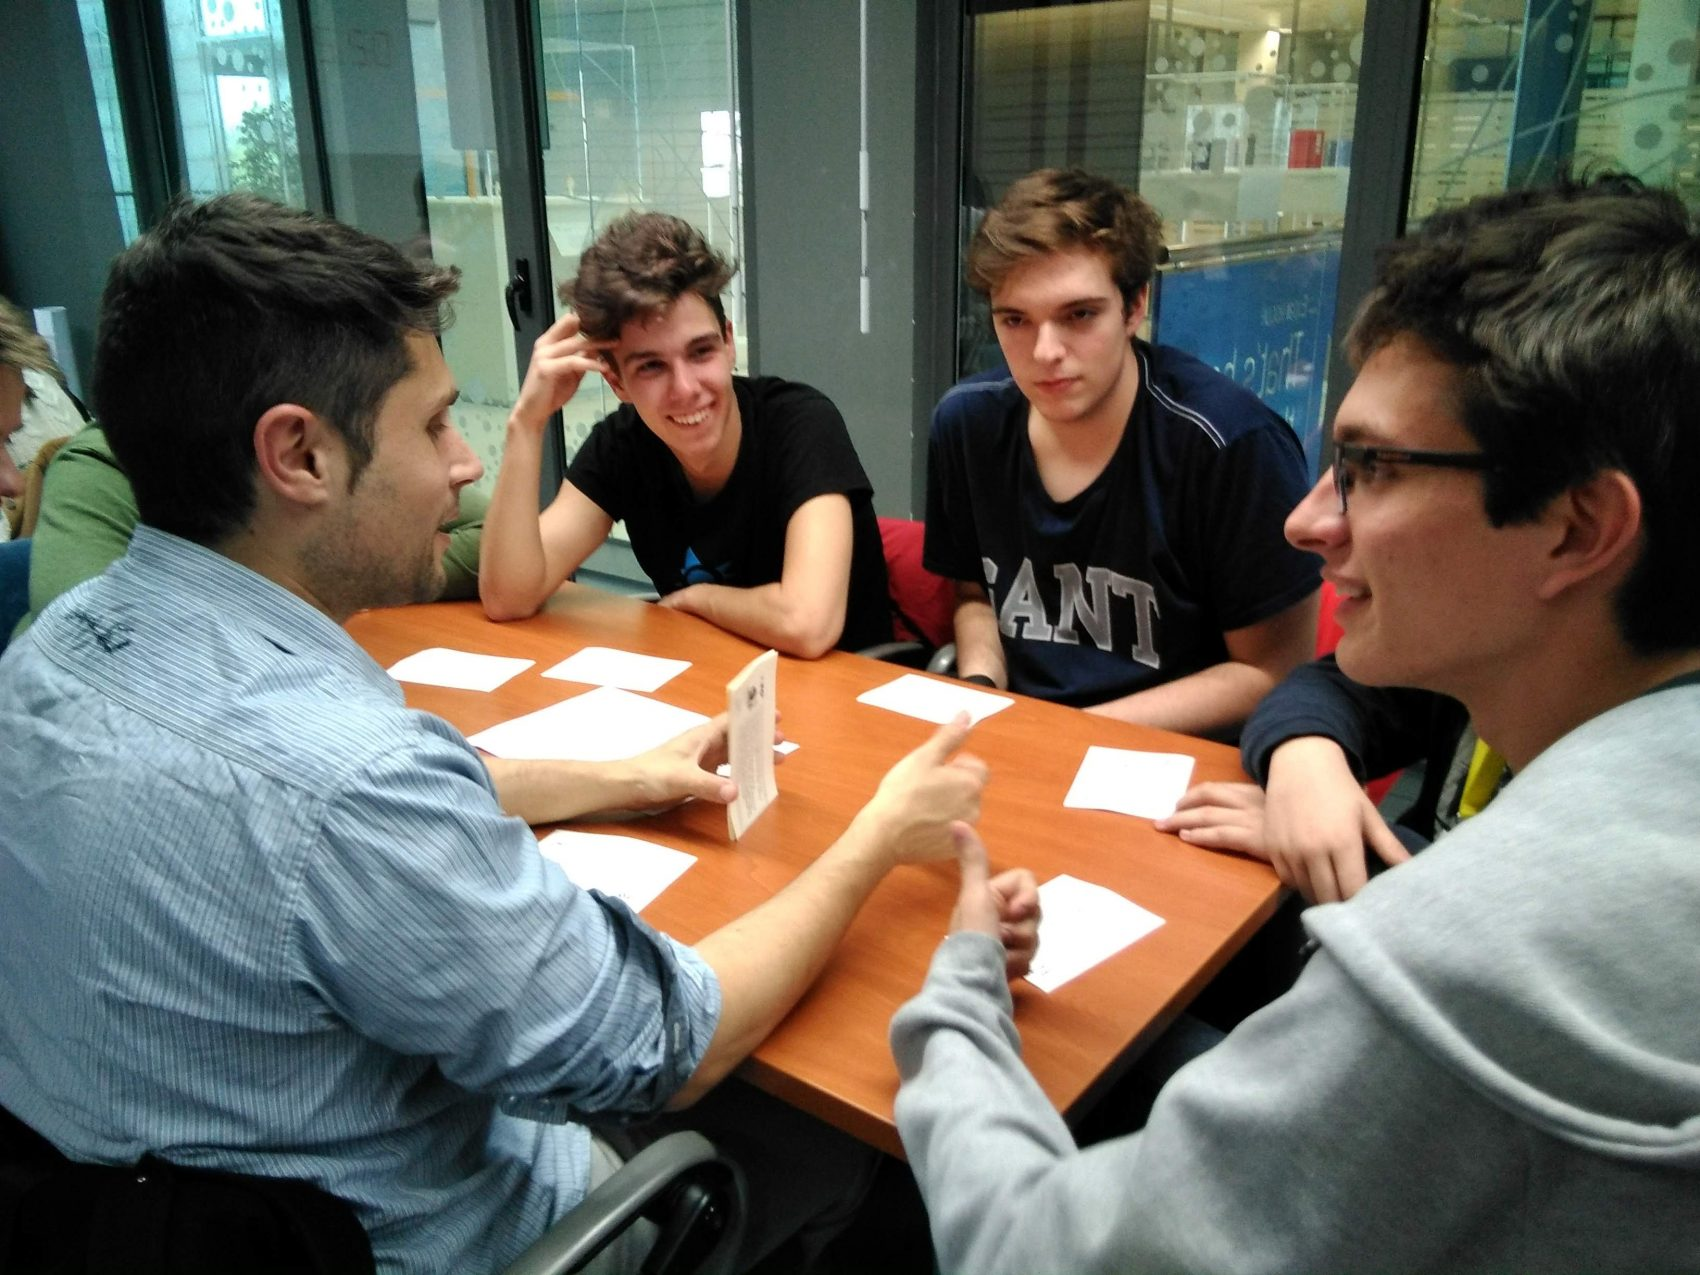 students during a decide game